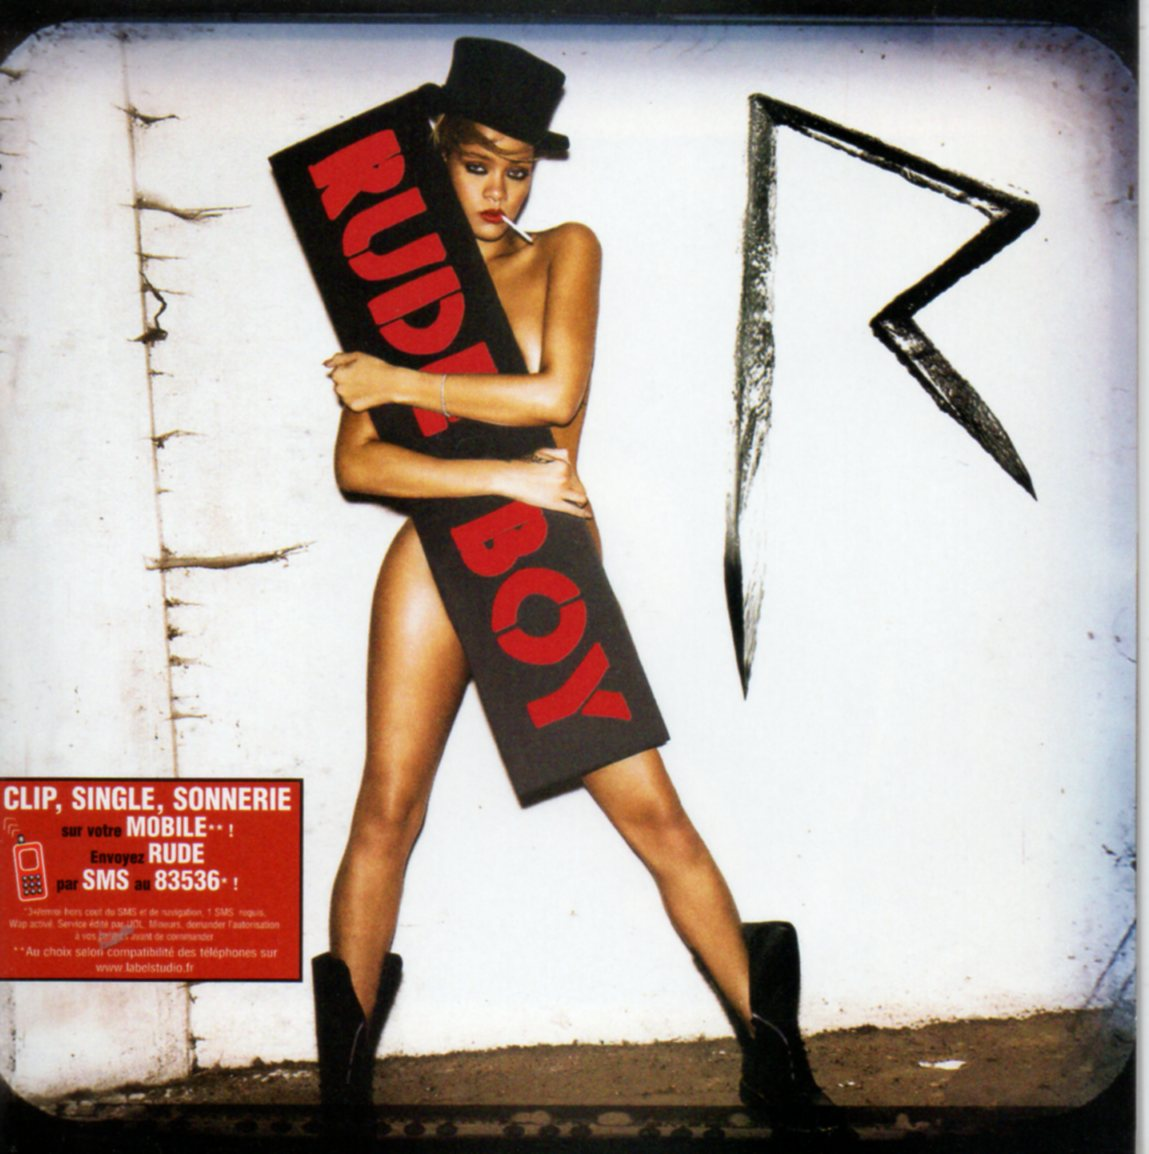 RIHANNA - Rude boy 2-track CARD SLEEVE - CD single